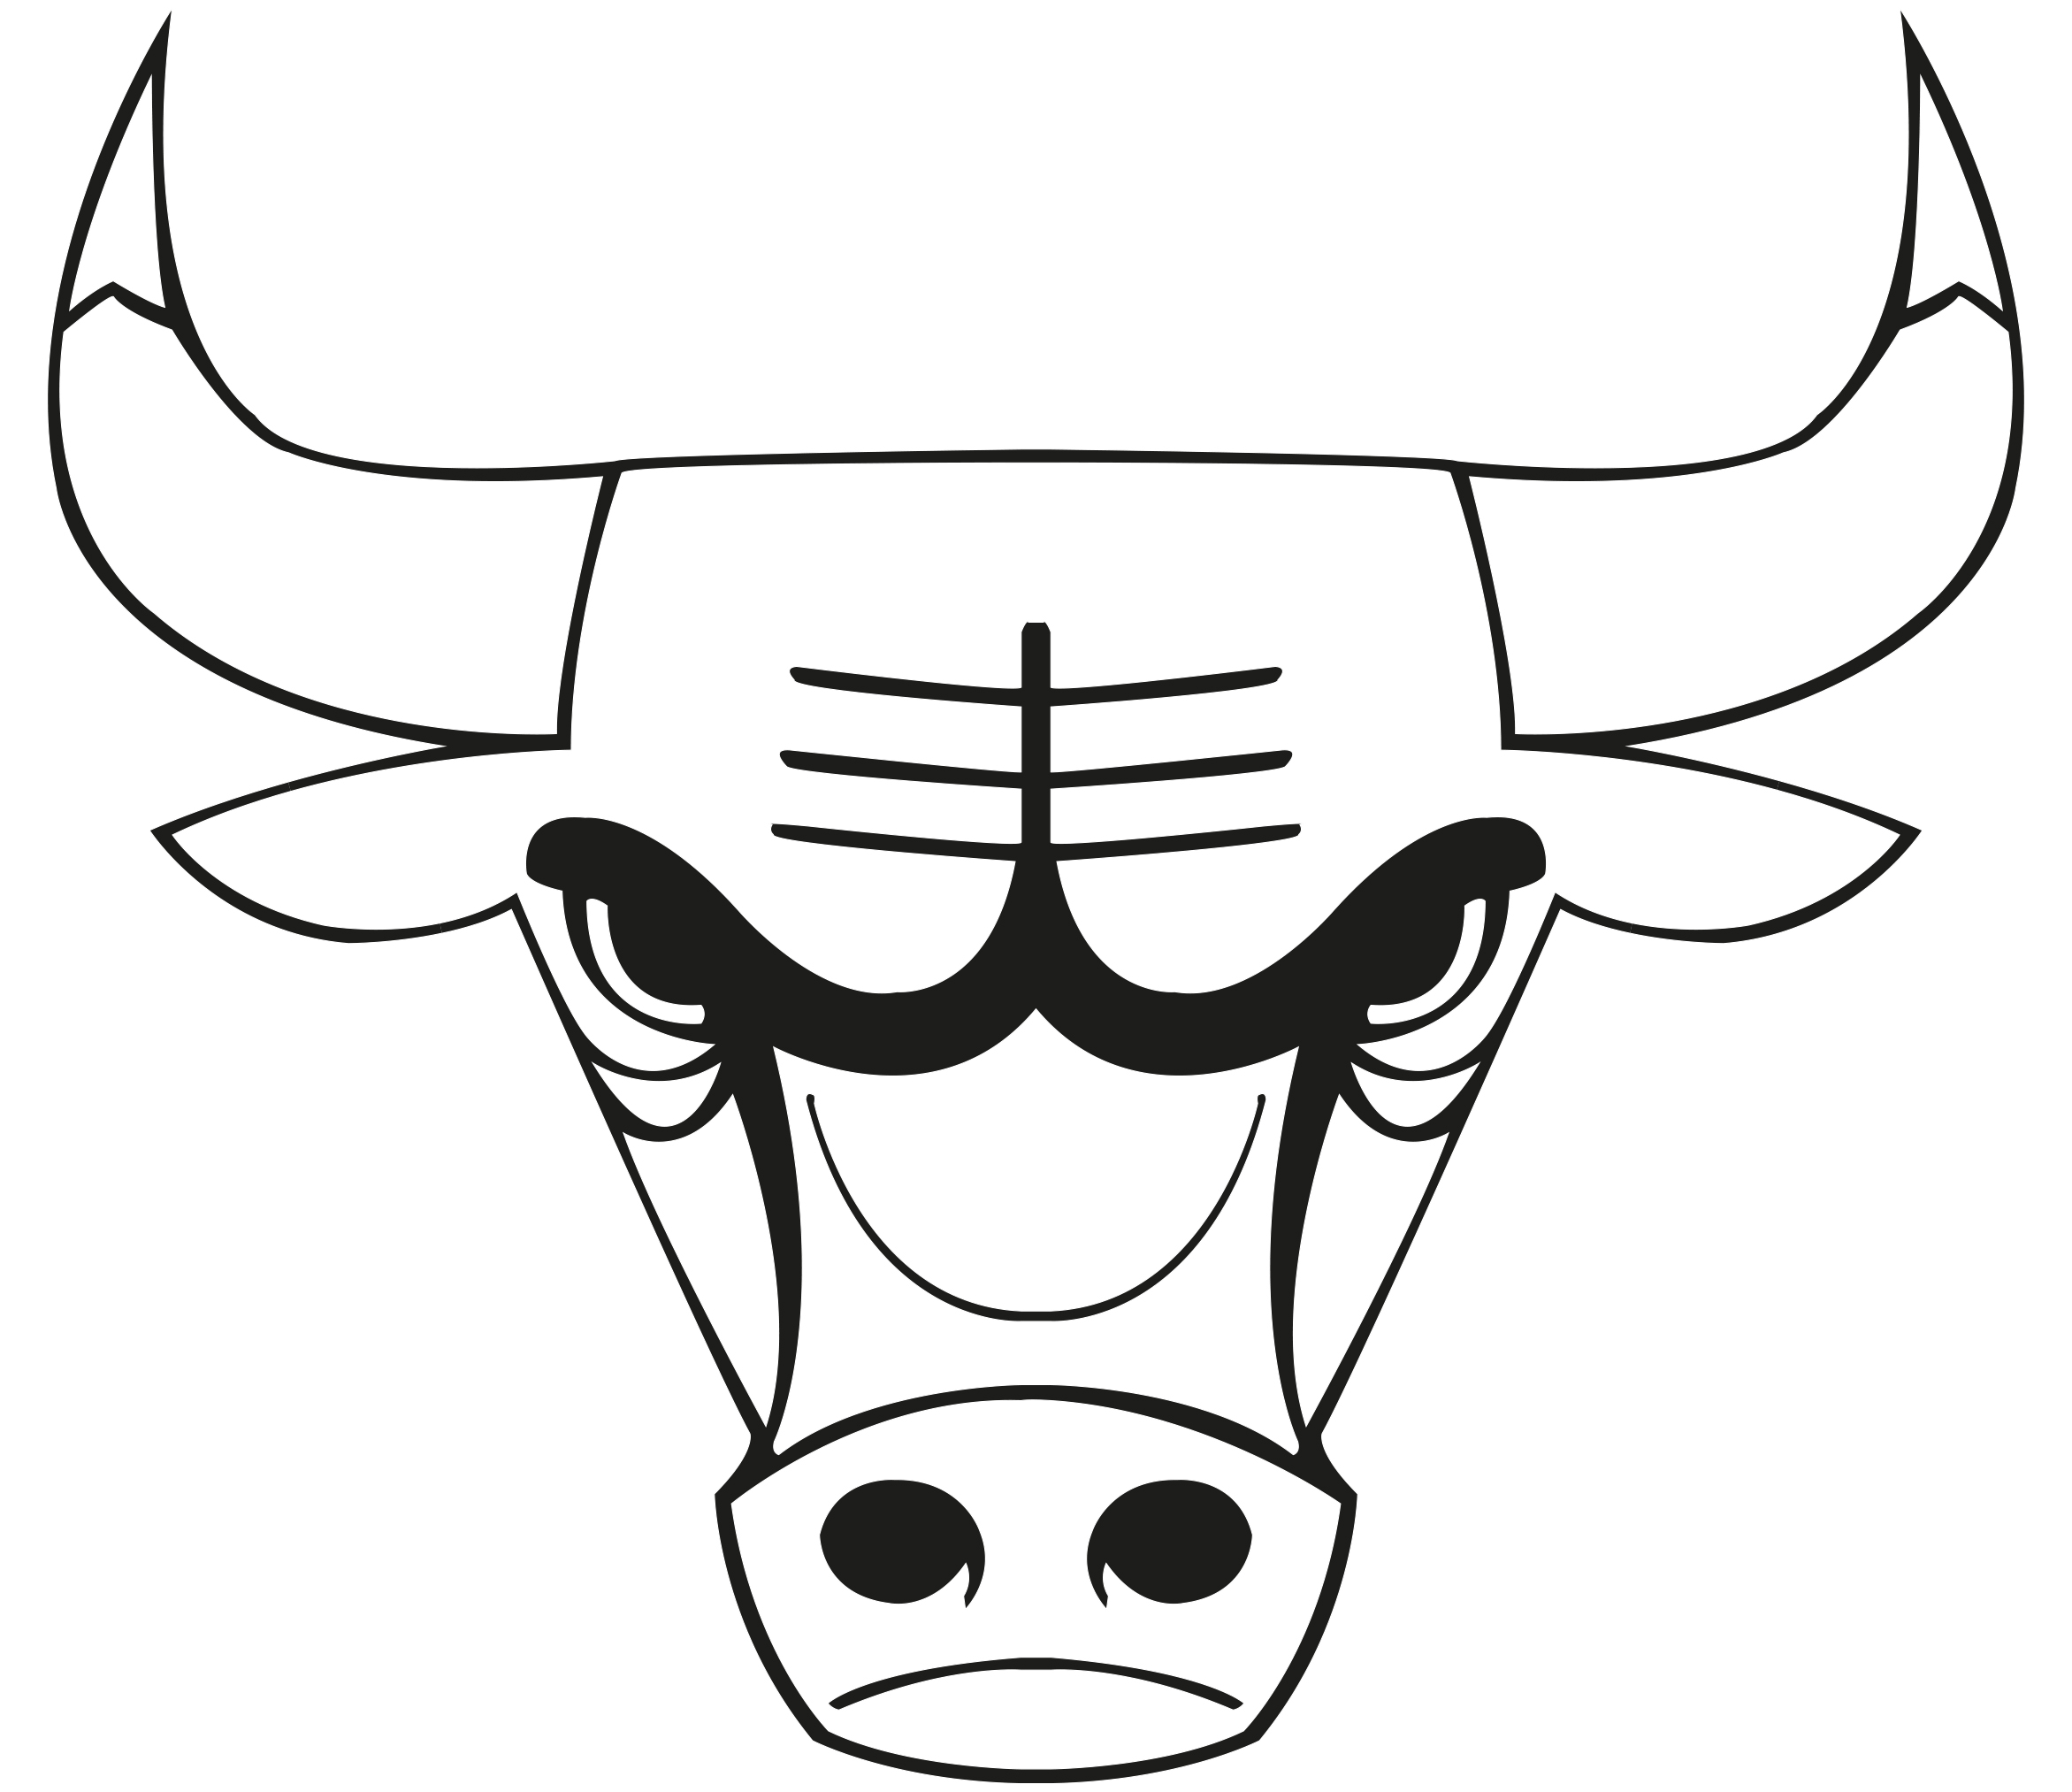 Drawn bulls spain bull  Drawing Chicago logo of